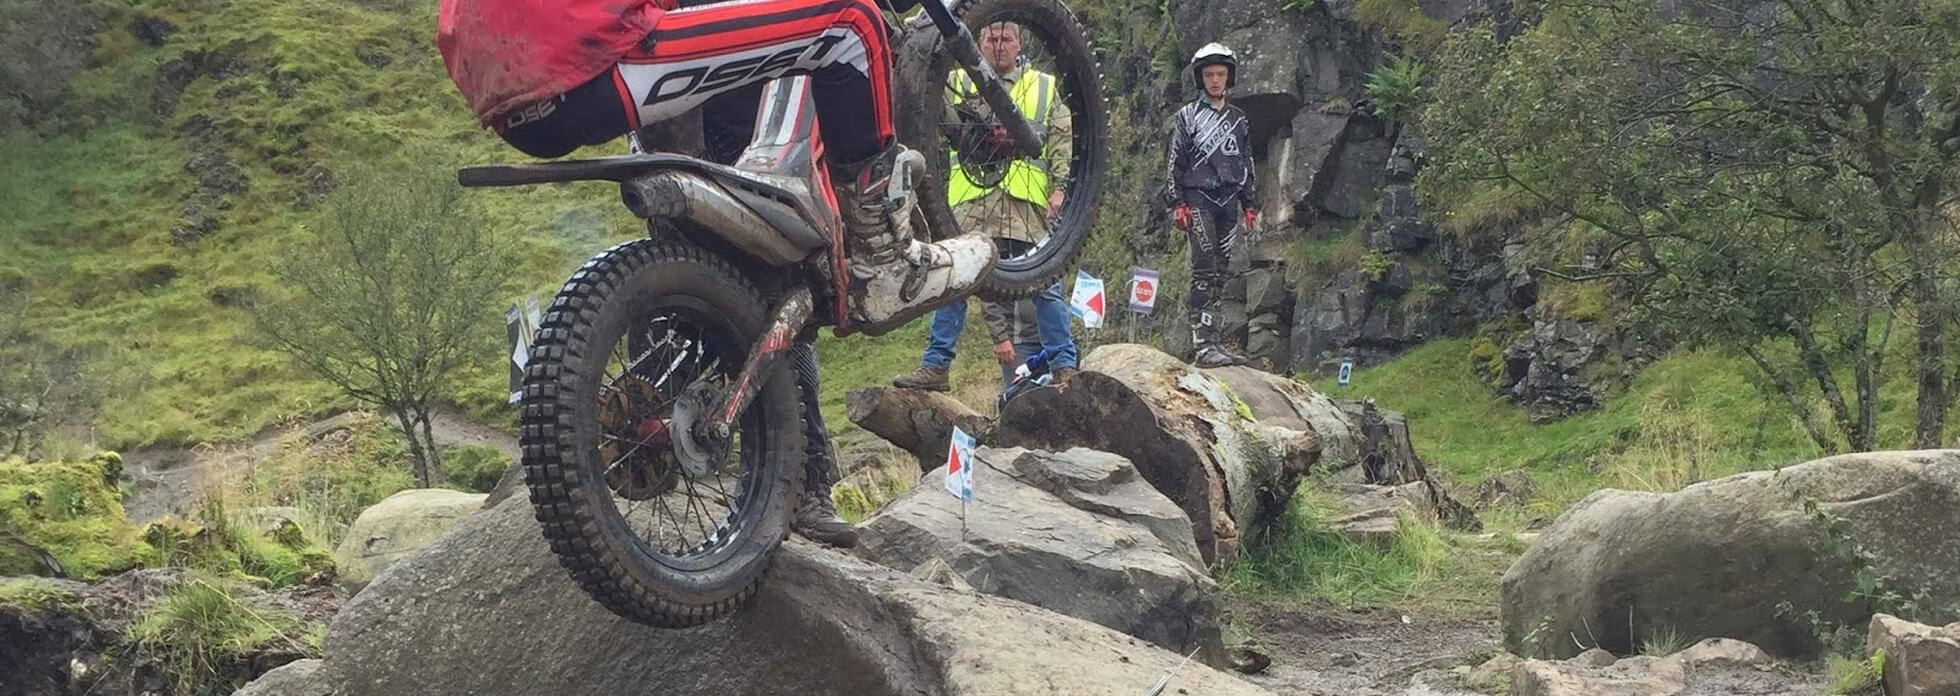 Bike Tech offroad motorcycle events